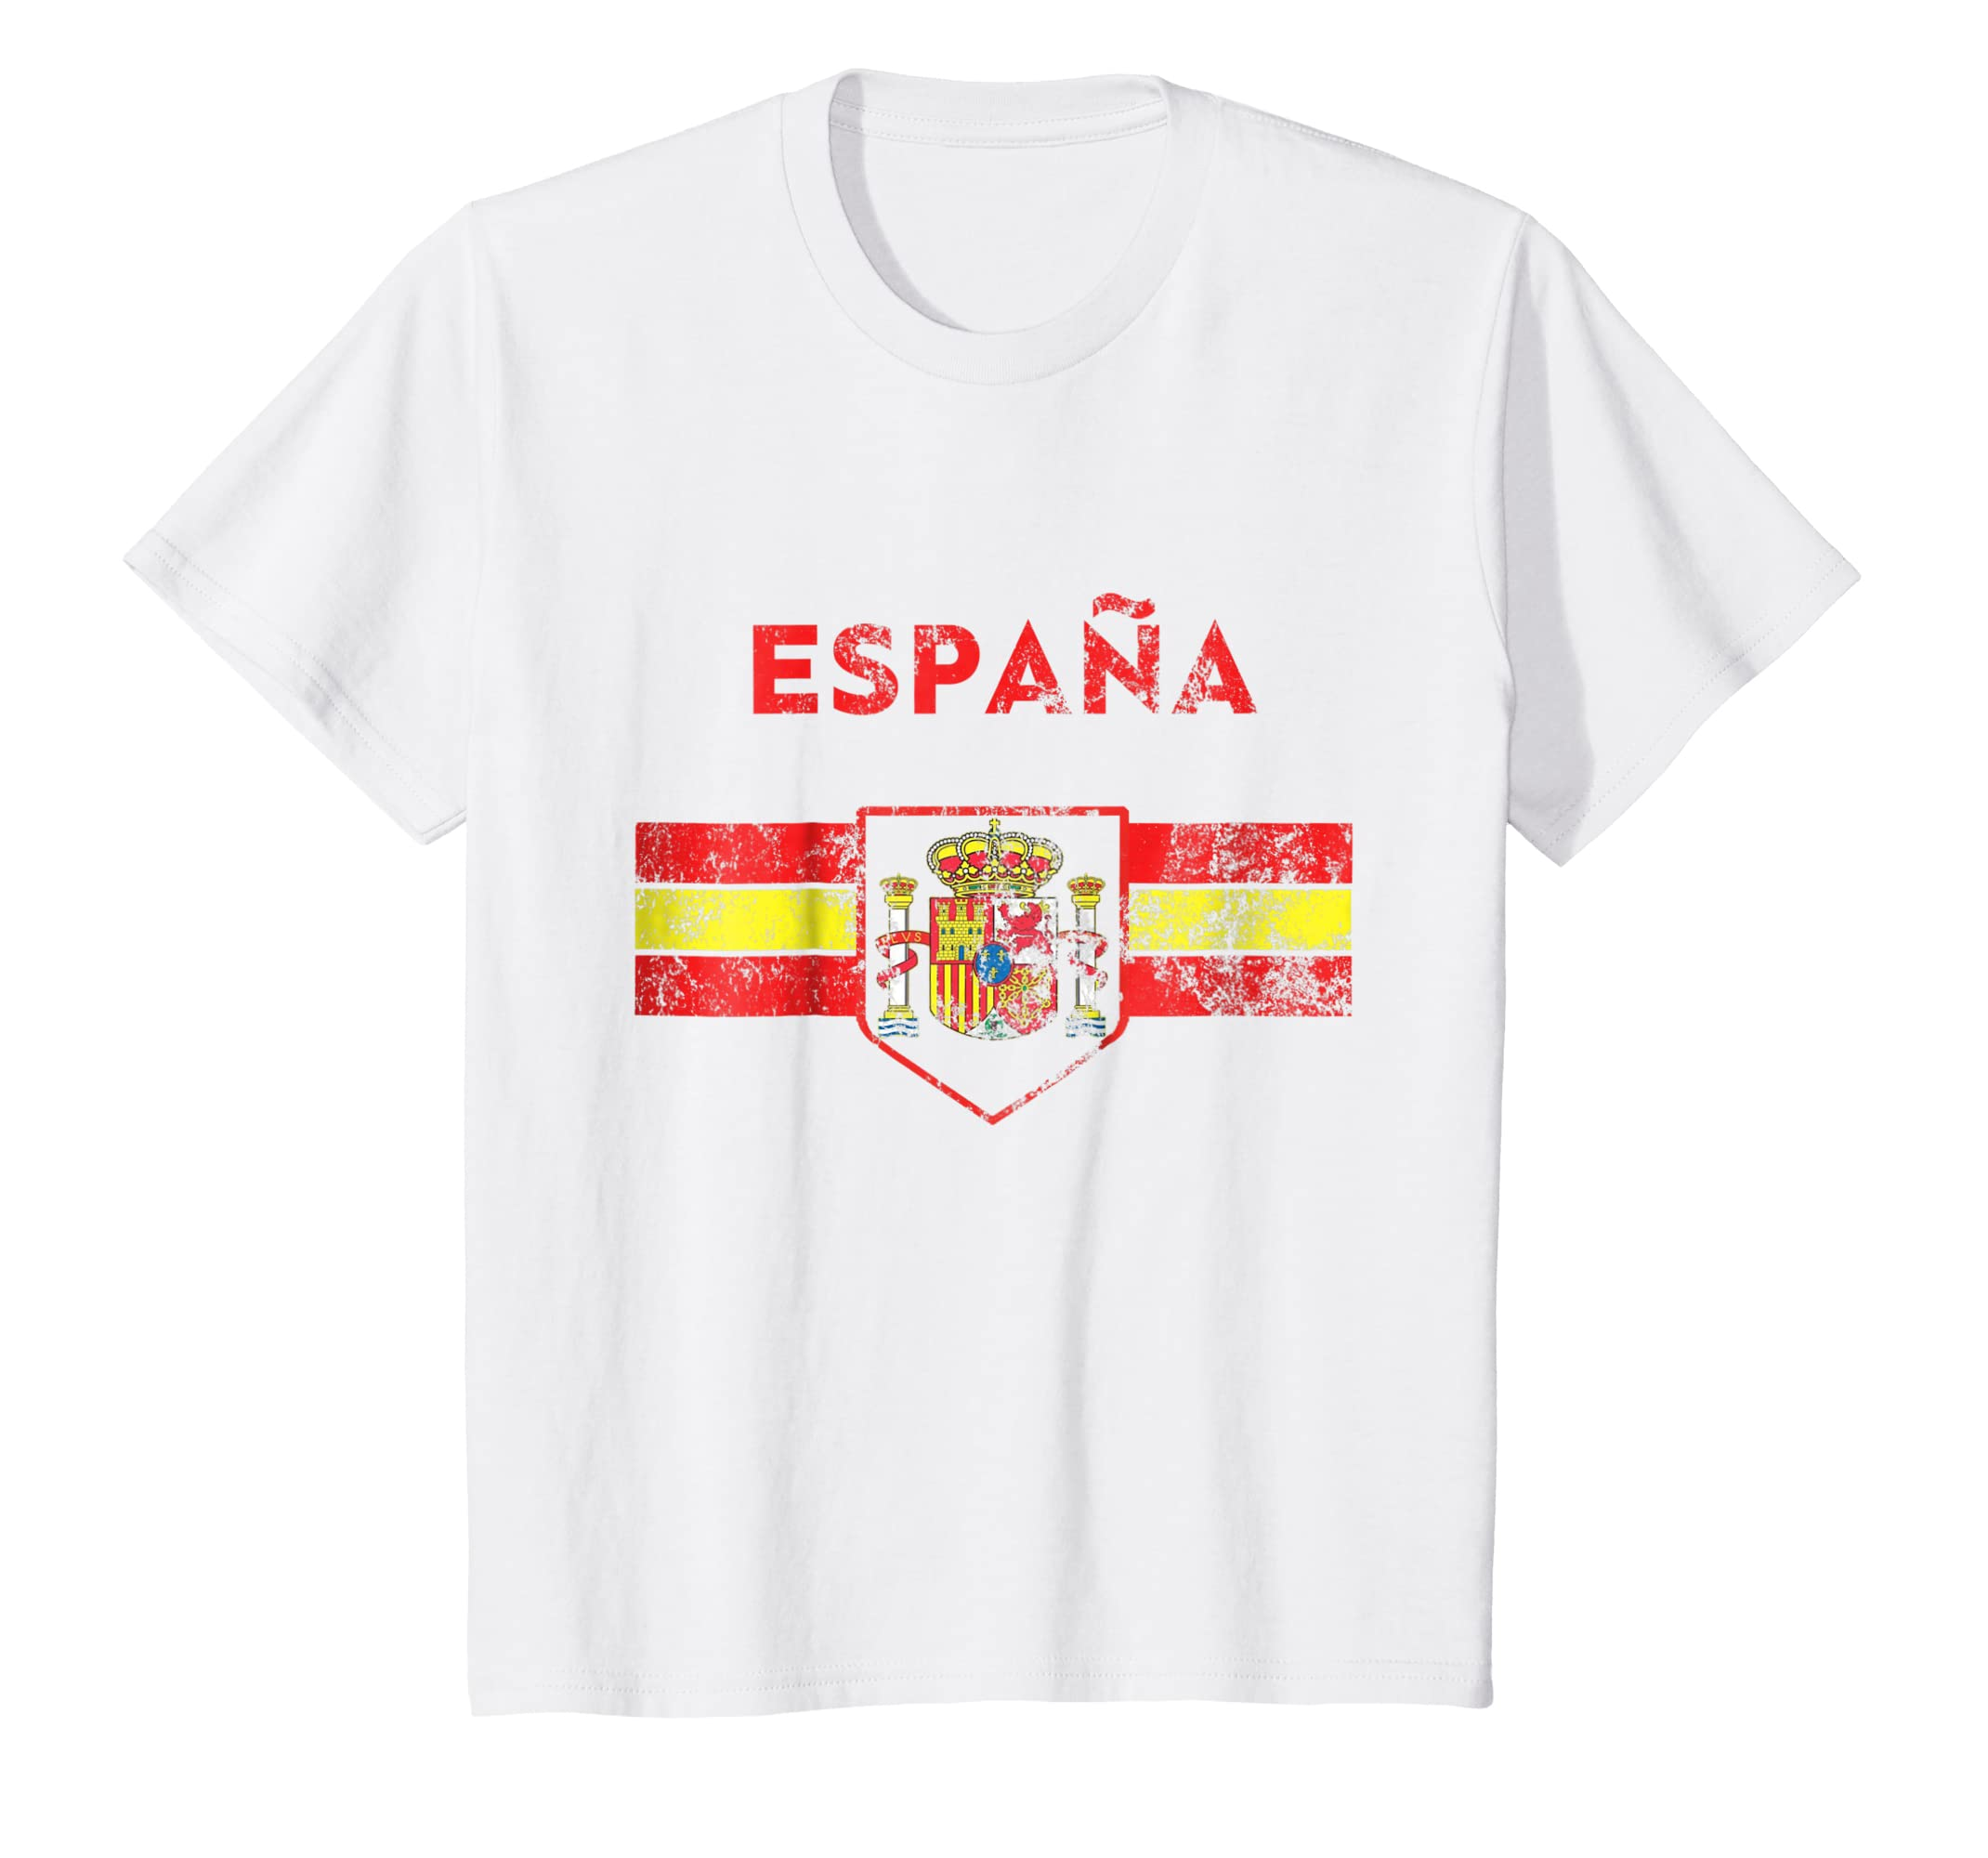 Amazon.com: Spain Soccer Jersey Shirt Espana Barcelona Men Women Kids: Clothing